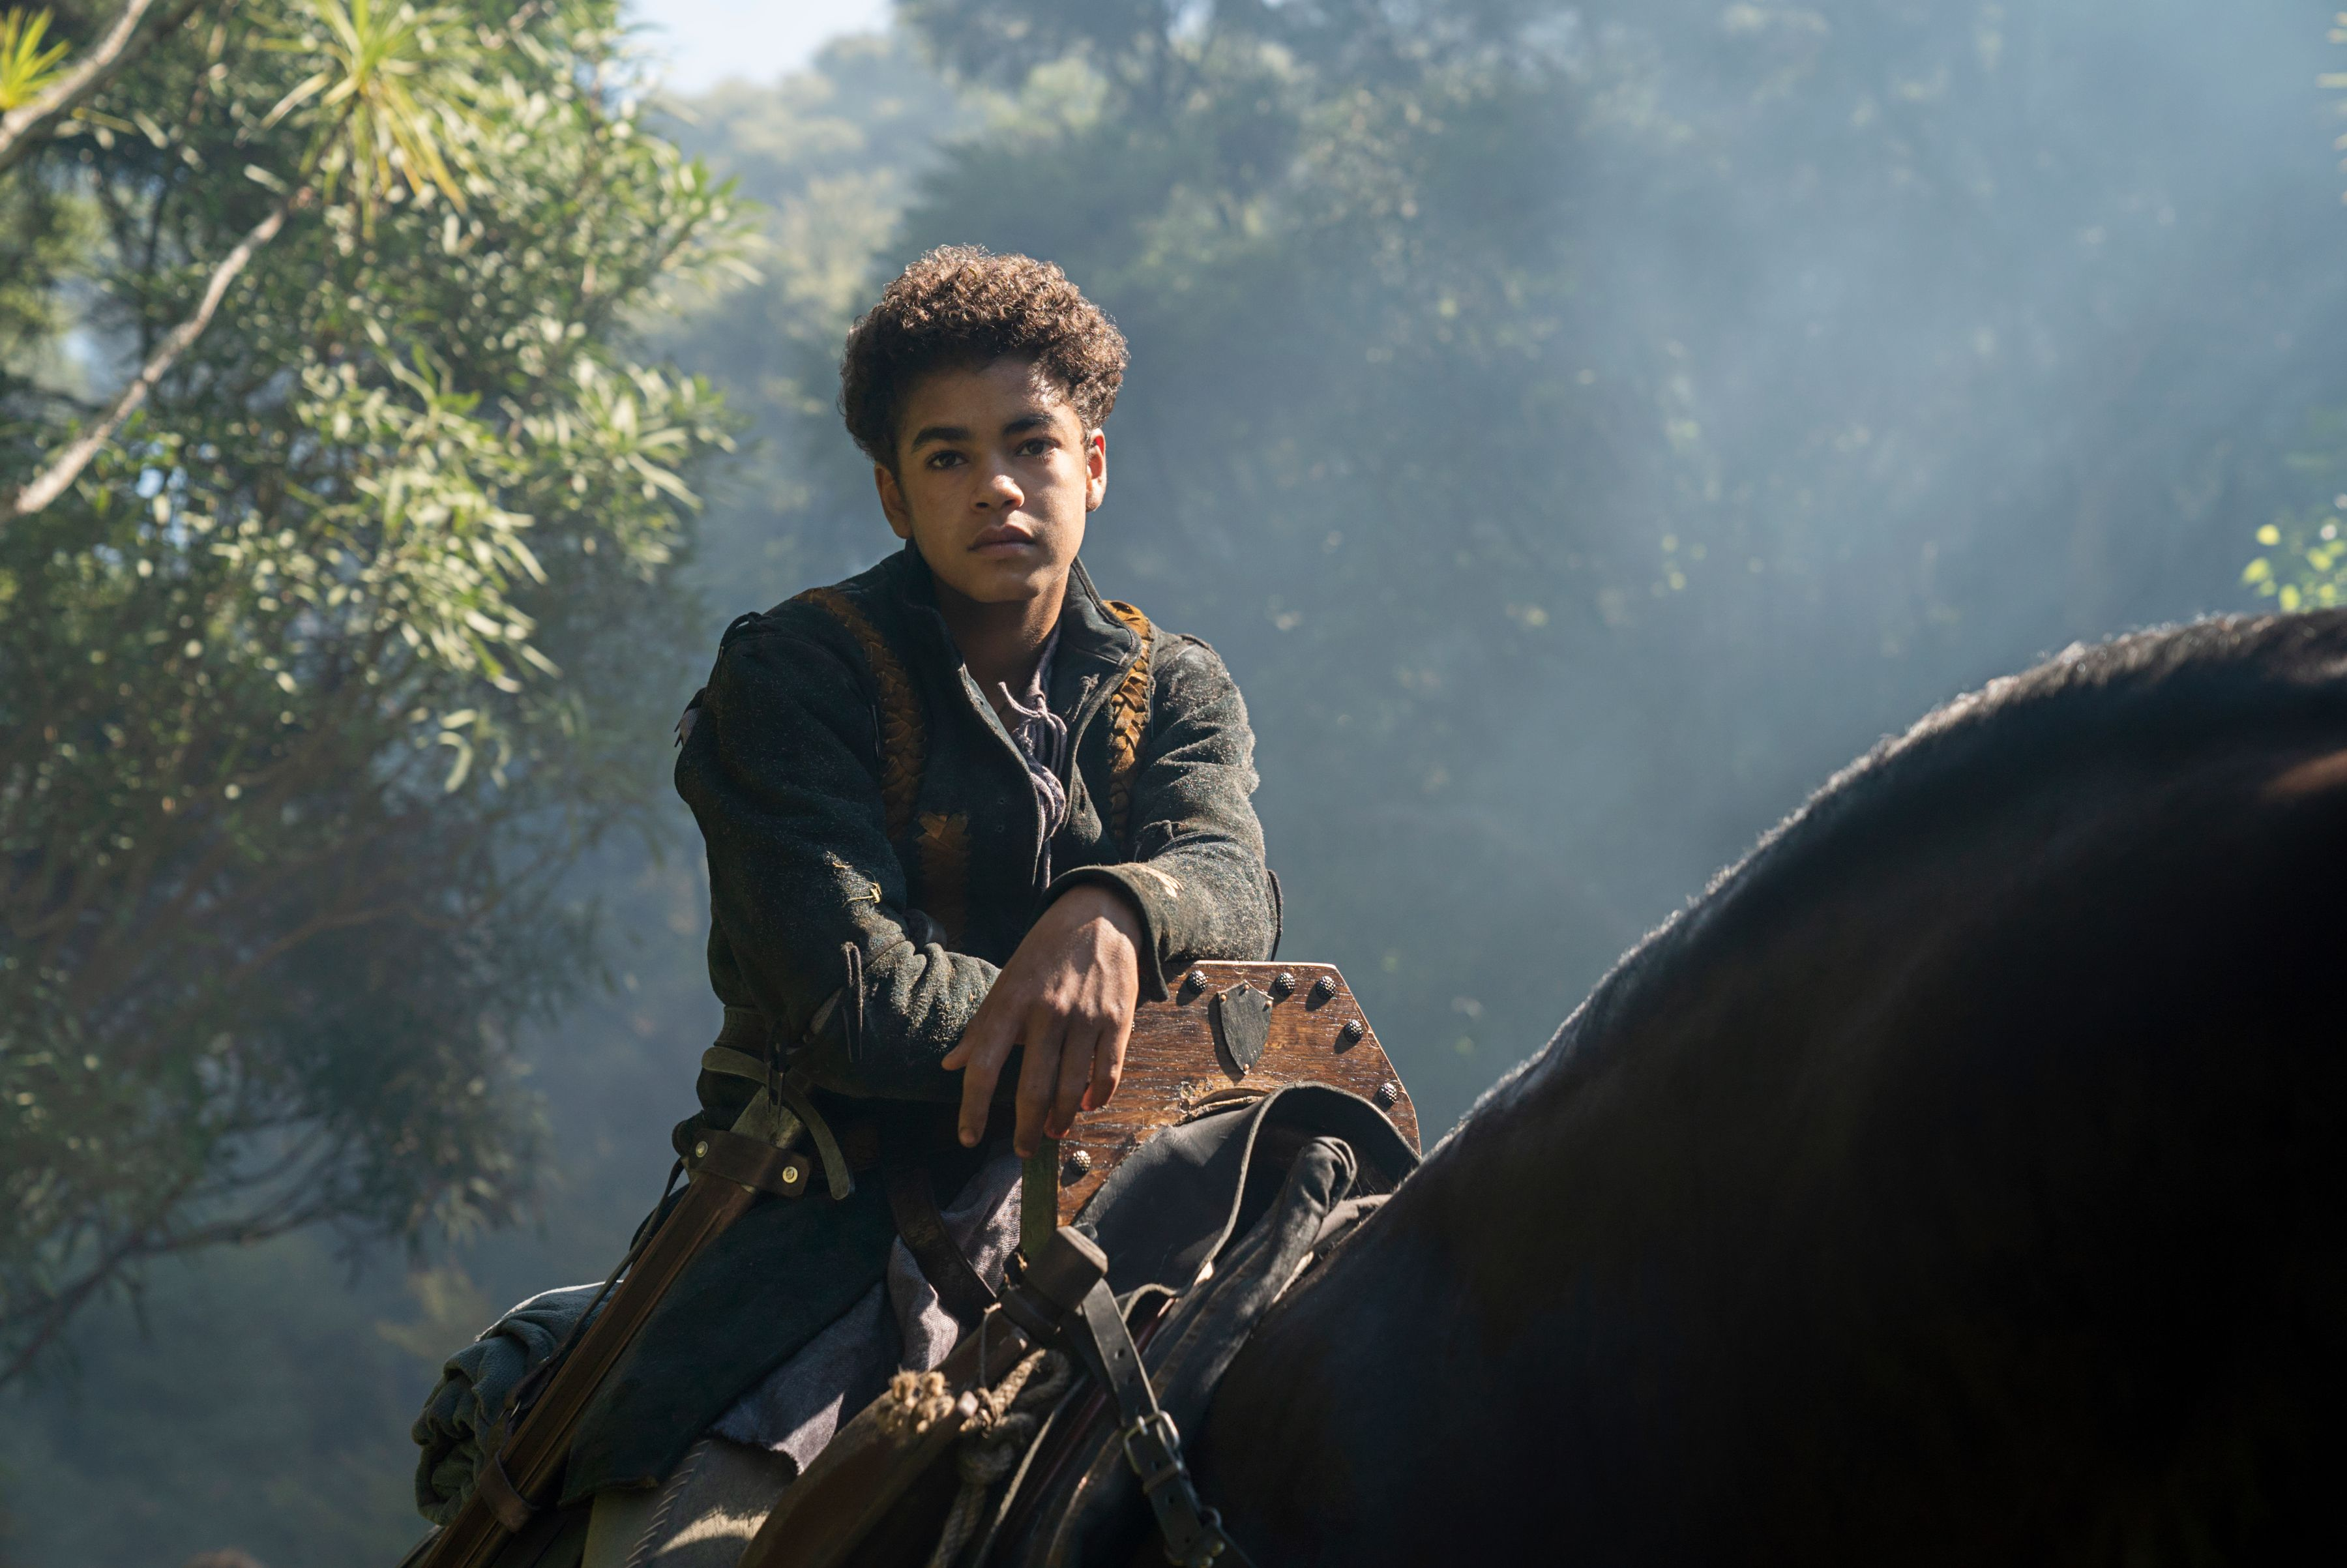 http://31.220.61.170/wp-content/uploads/2020/03/This-New-Netflix-Show-Letter-For-The-King-Is-Giving.jpg